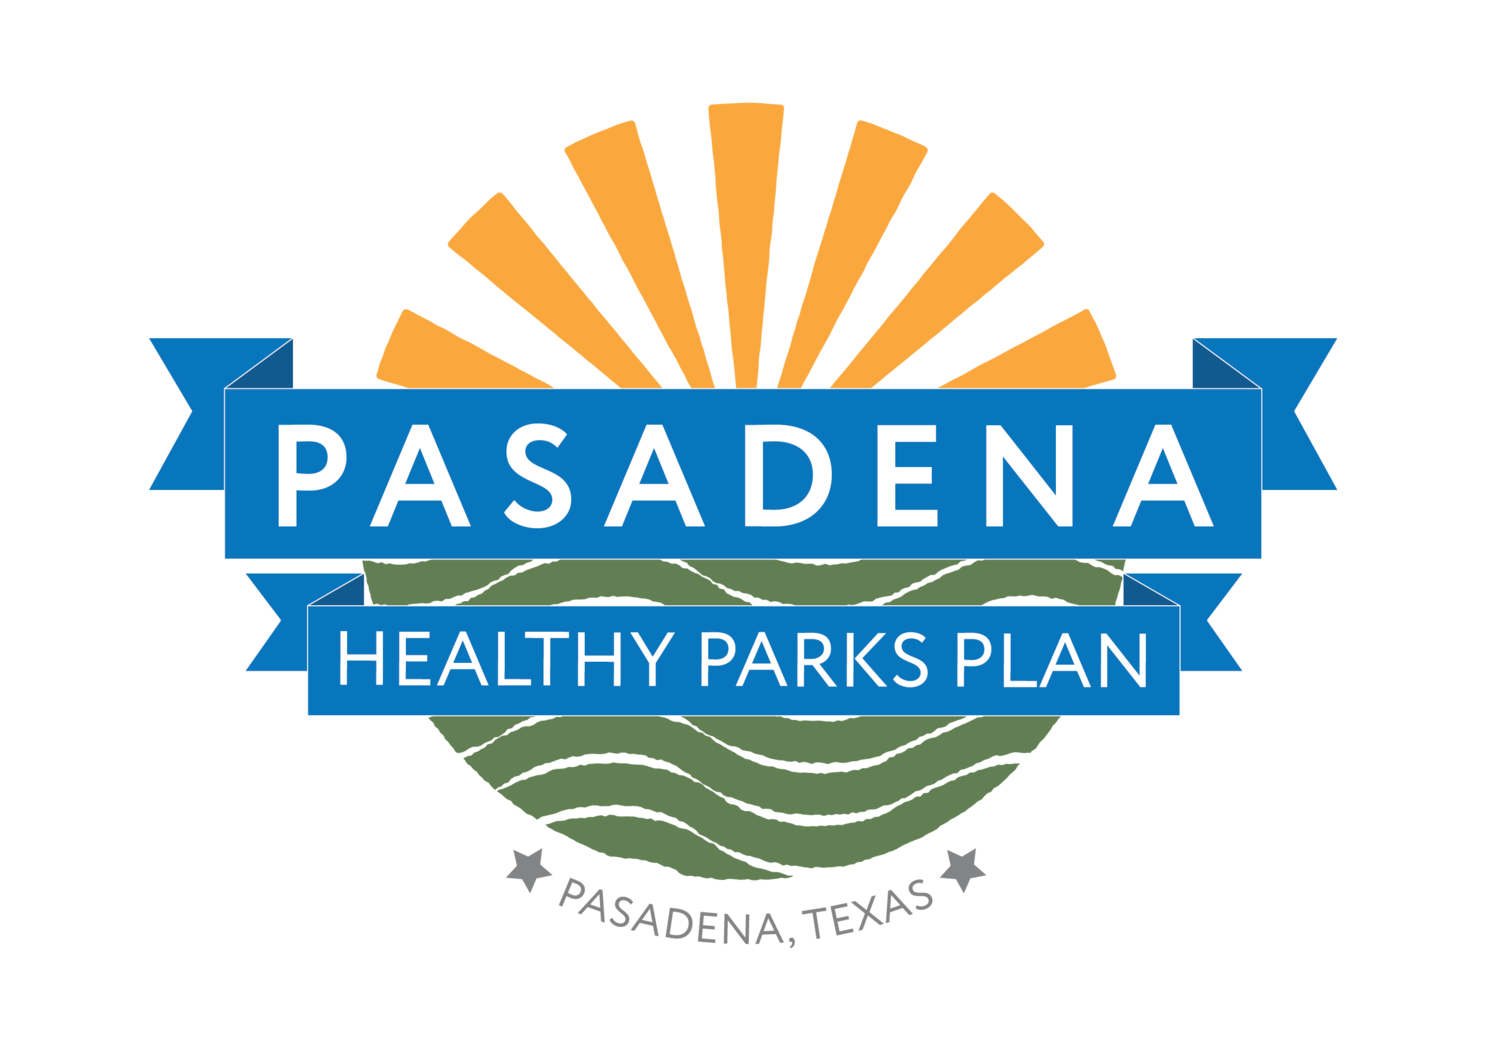 Pasadena Healthy Parks Plan